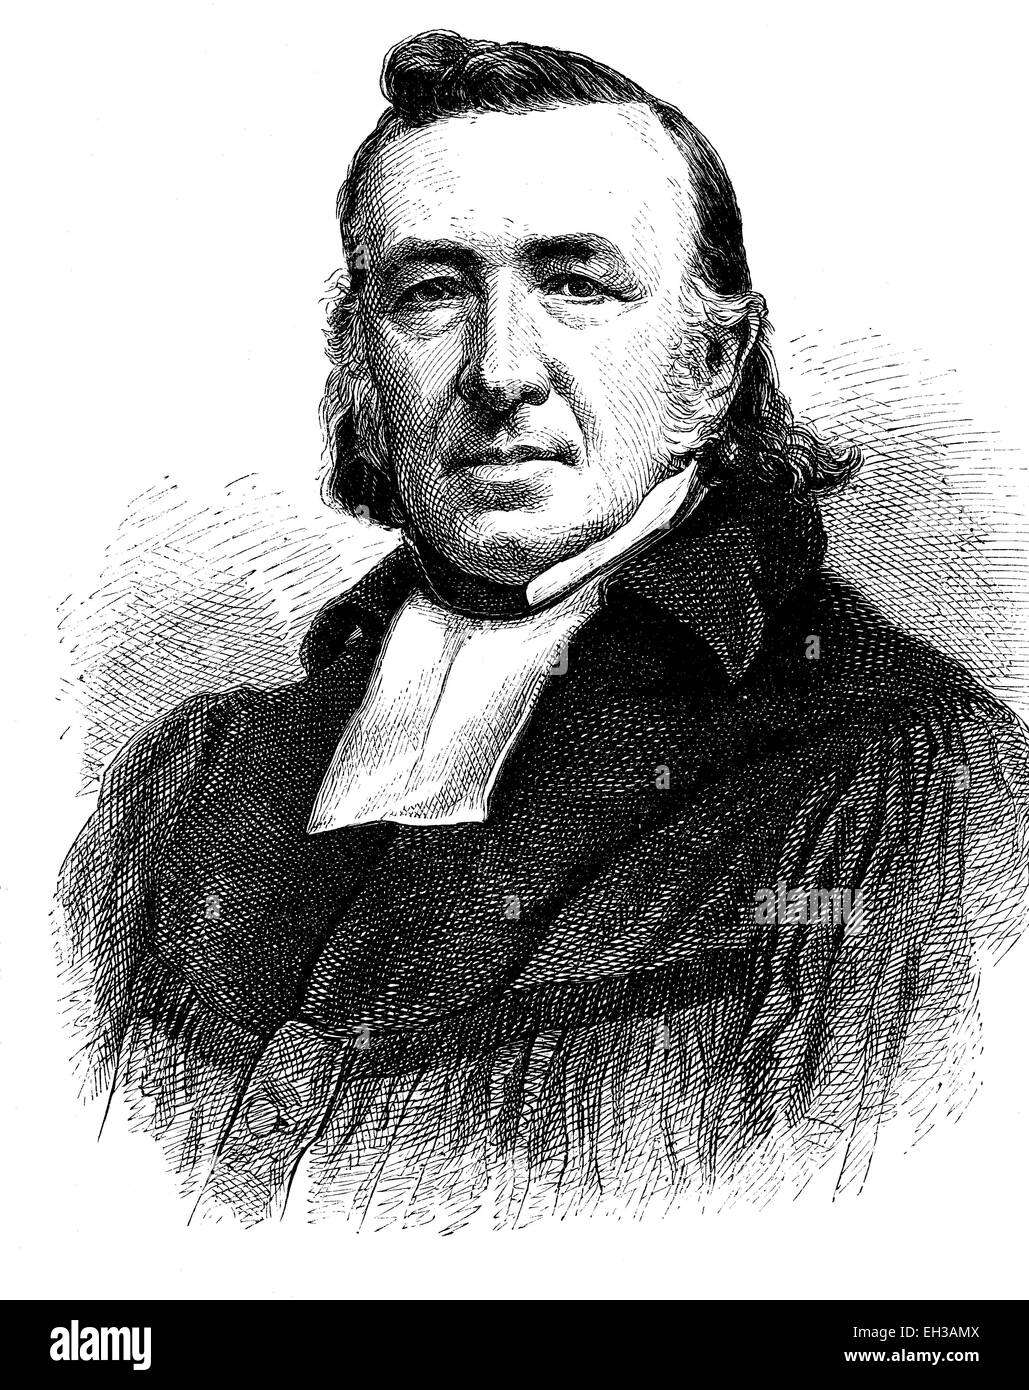 Leopold Adolf Karl Sydow, 1800 - 1882, Protestant theologian, wood engraving, 1880 - Stock Image